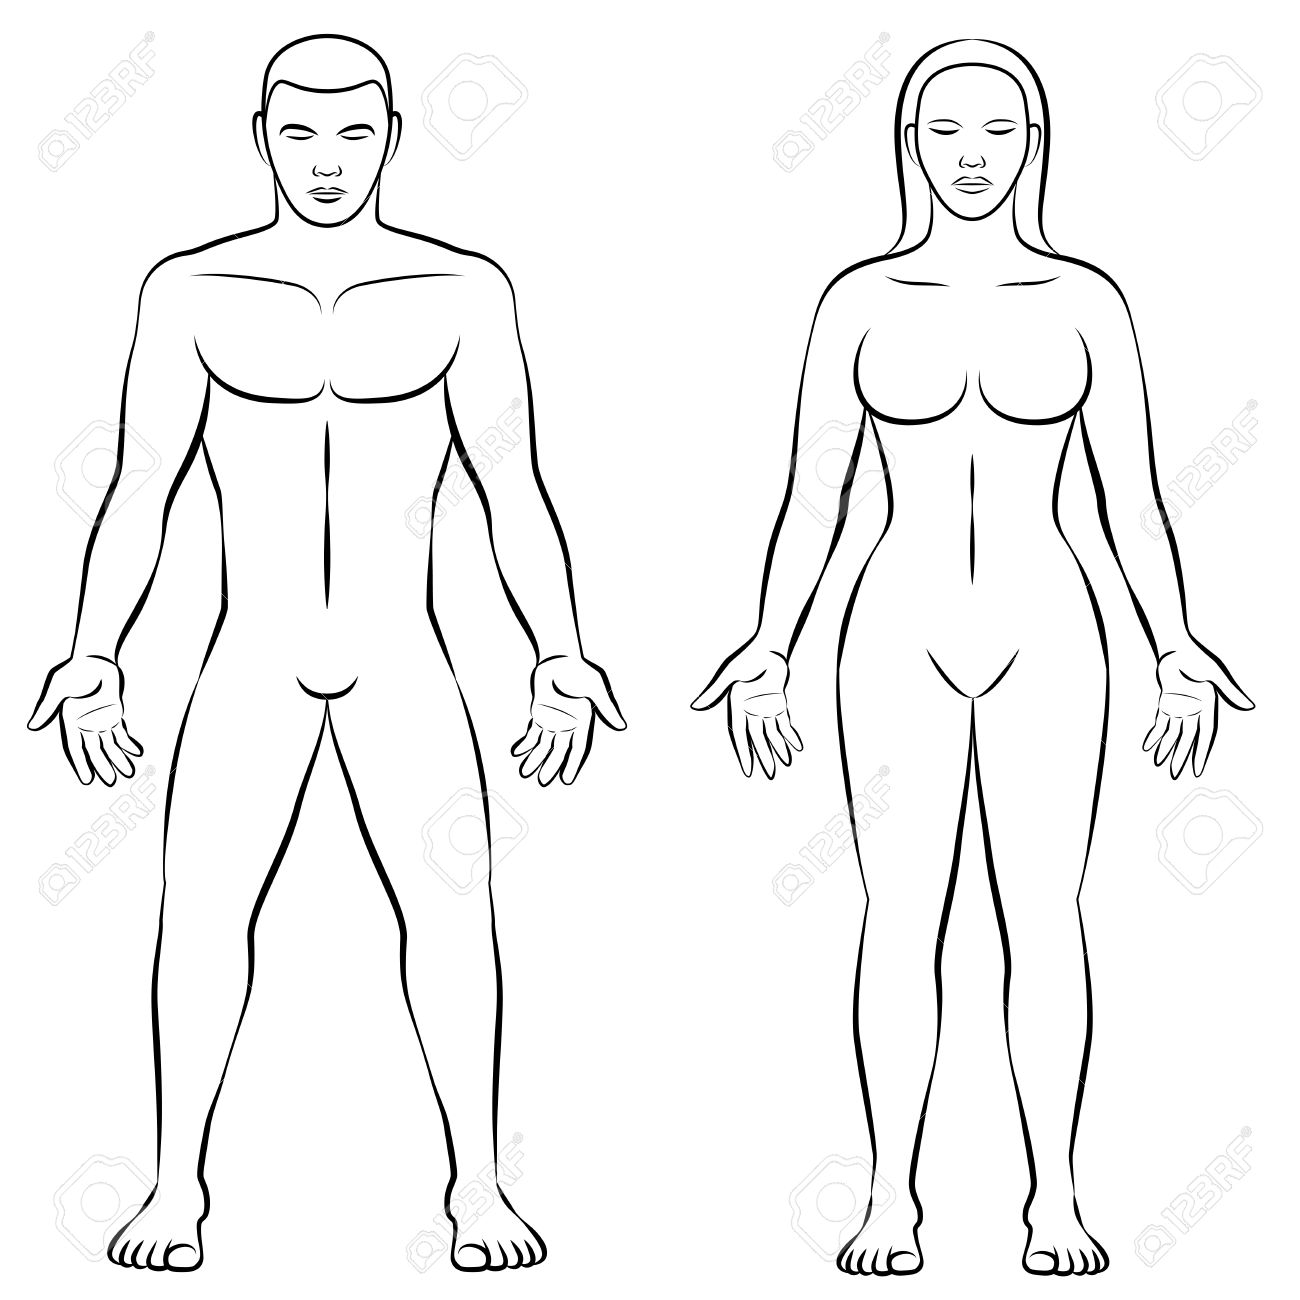 Man And Woman Outline Illustration For Comparison Of Female